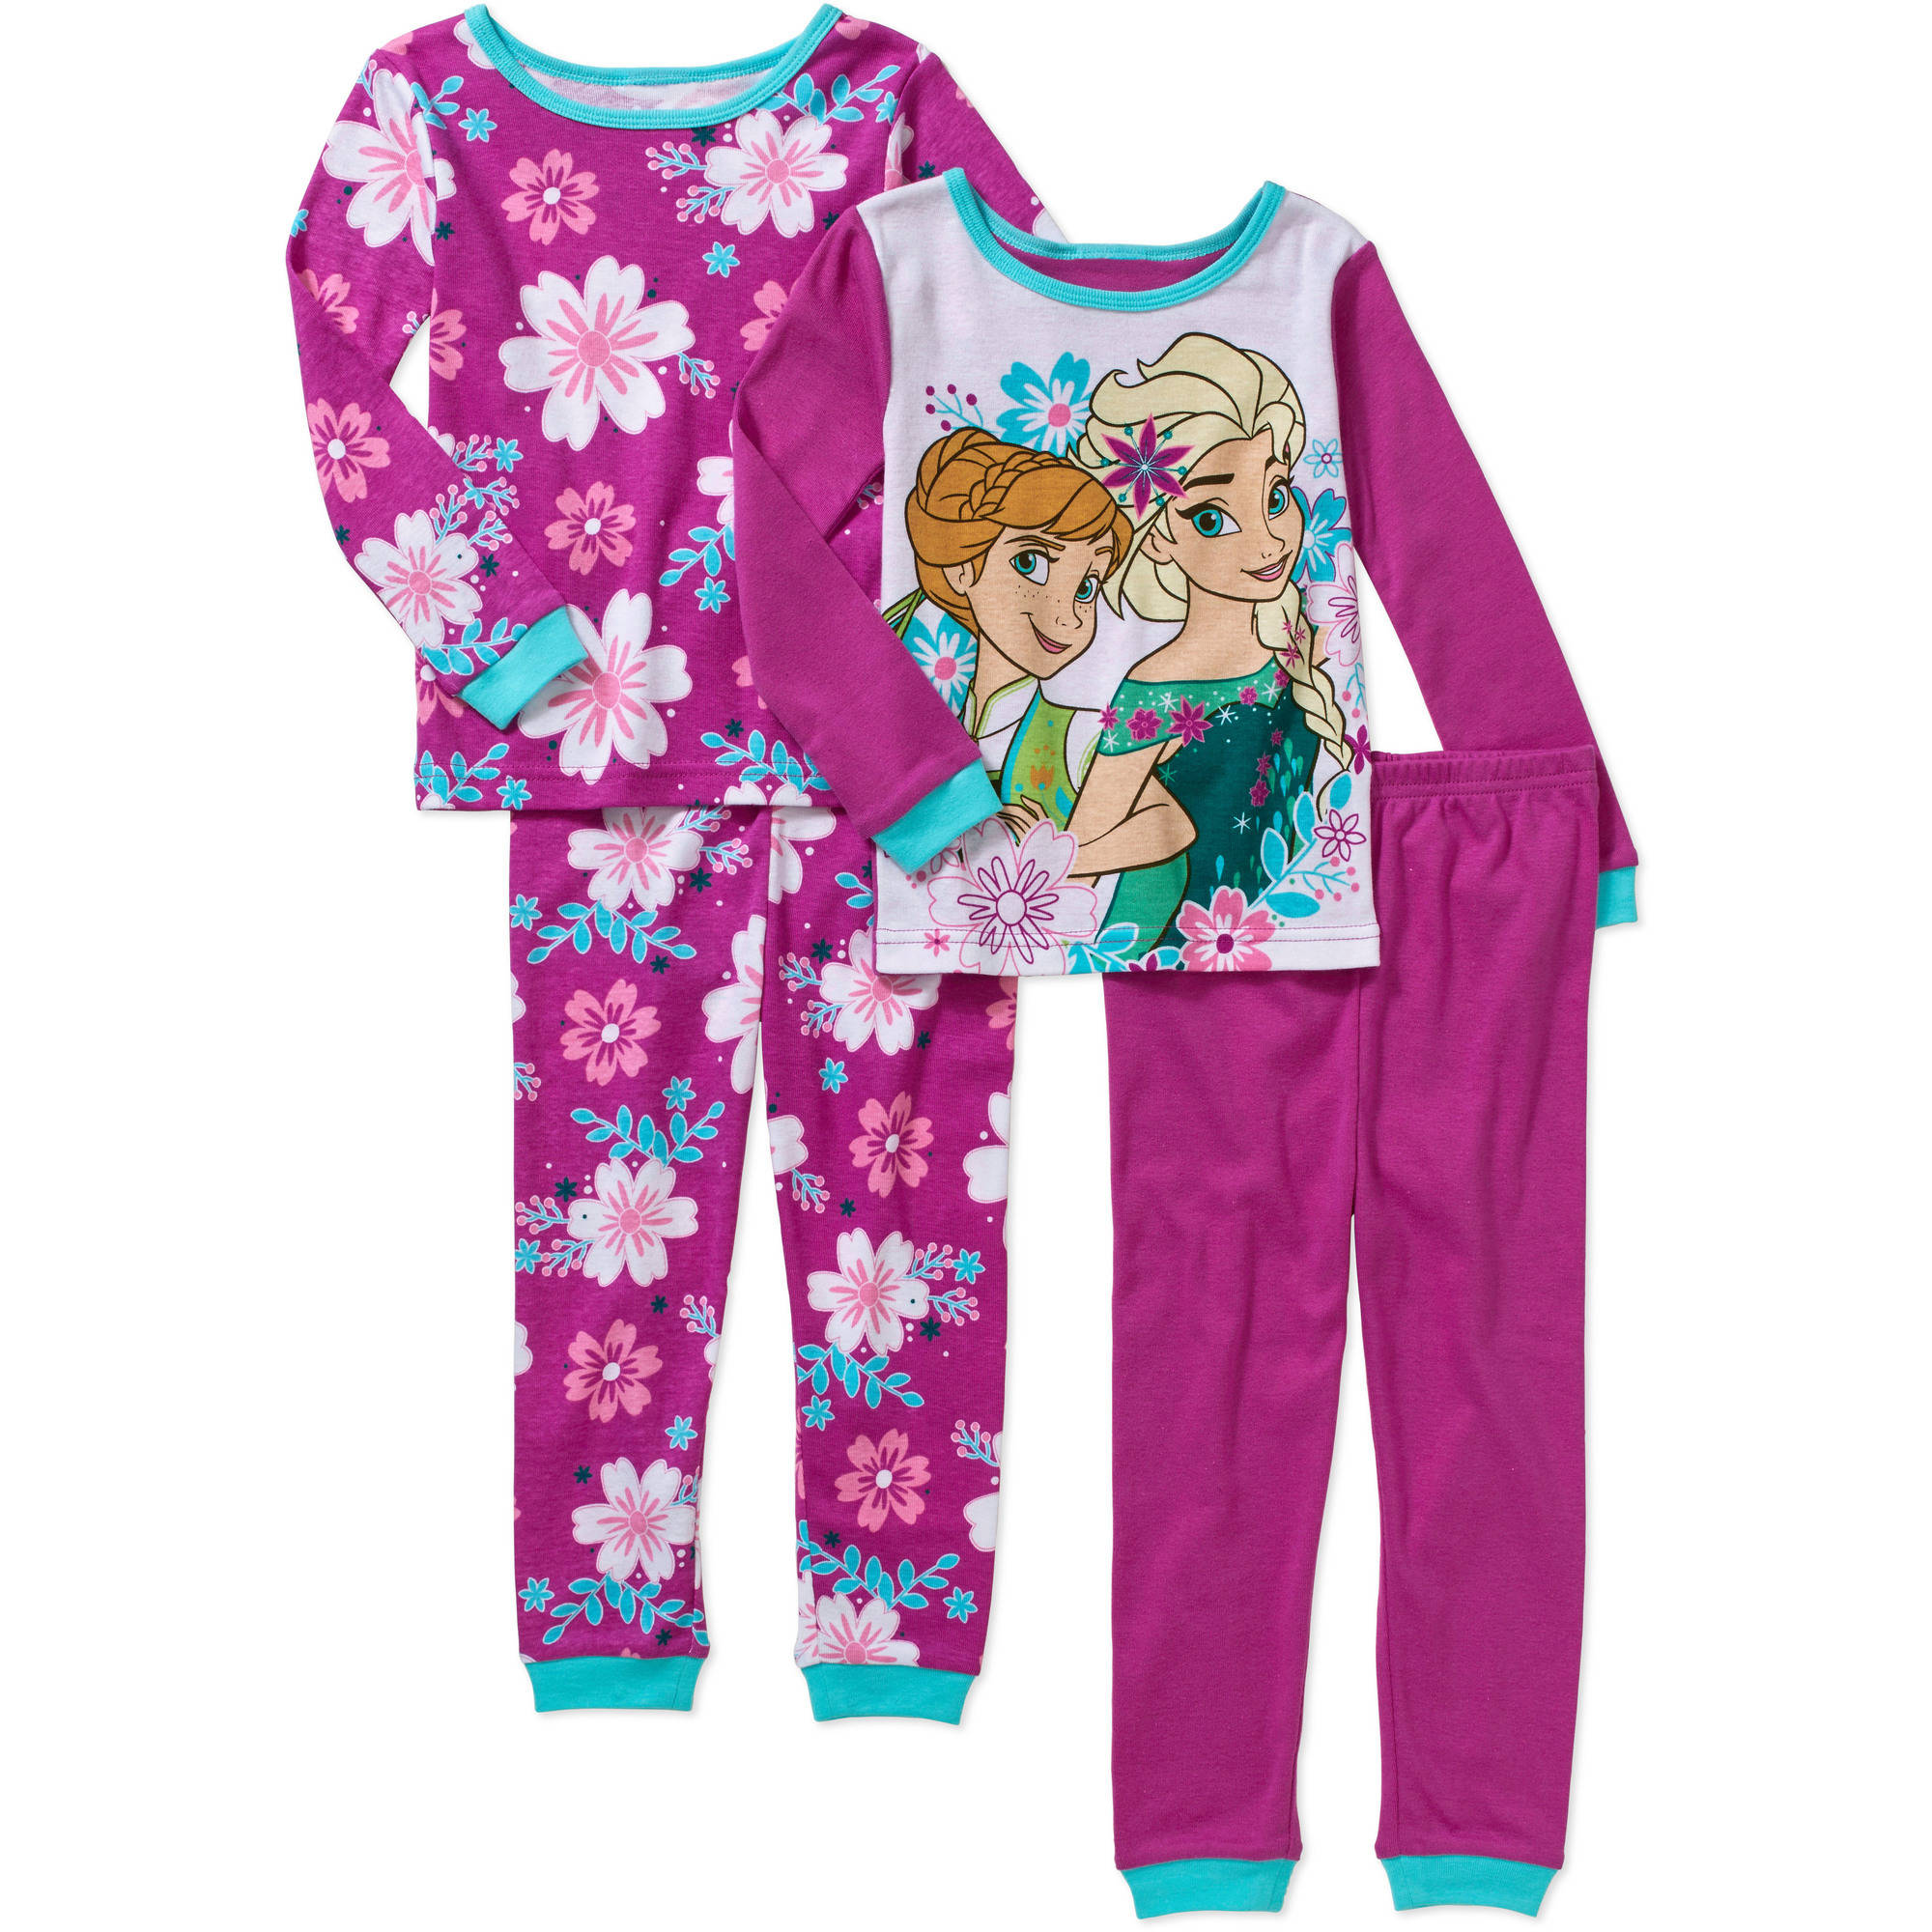 Disney Frozen Fever Baby Toddler Girl Cotton Tight-Fit Pajamas, 4-Piece Mix and Match Set